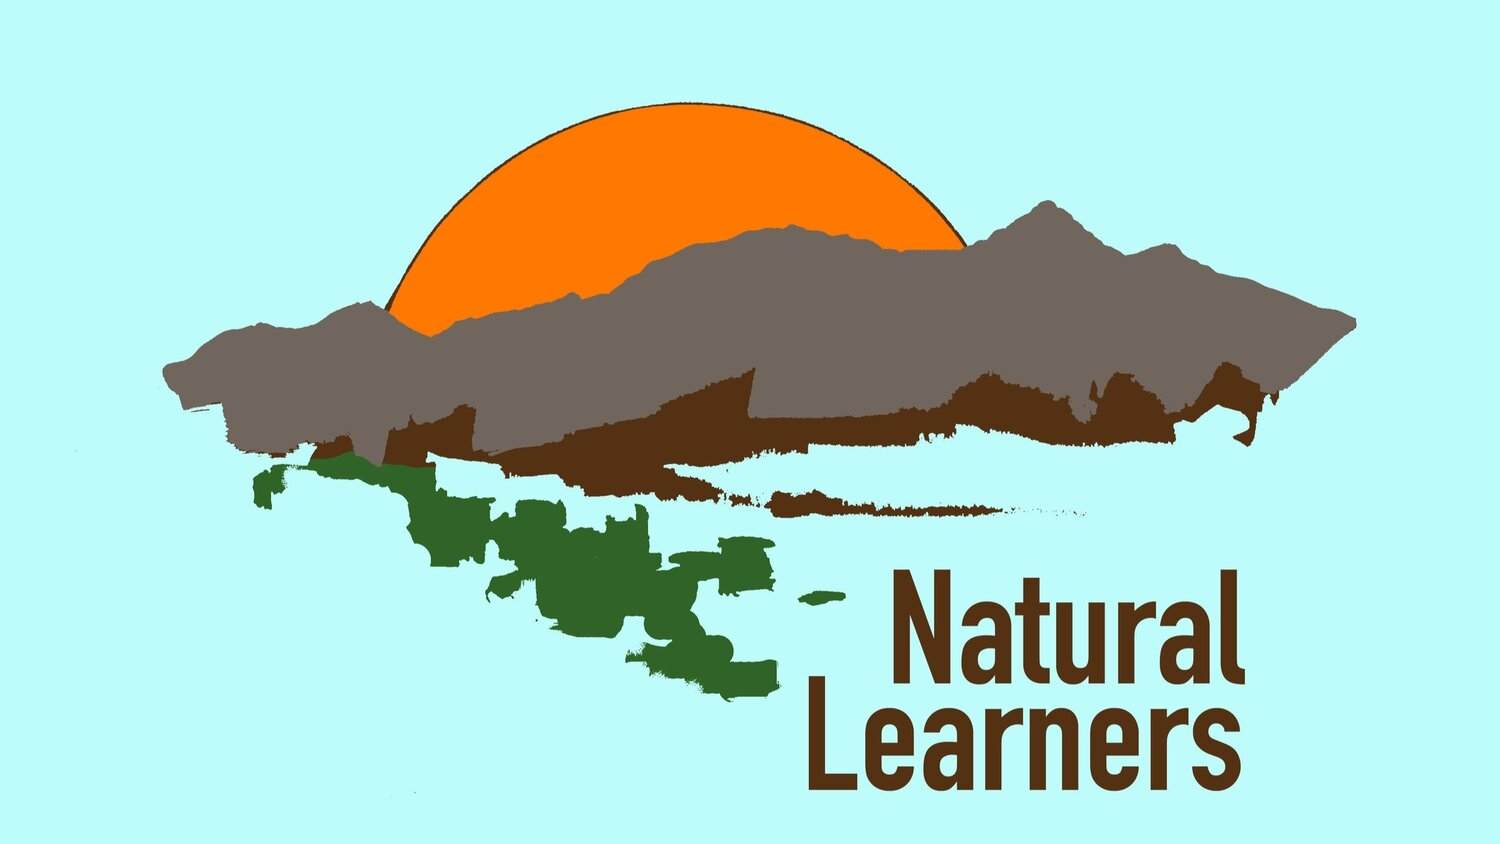 Natural Learners